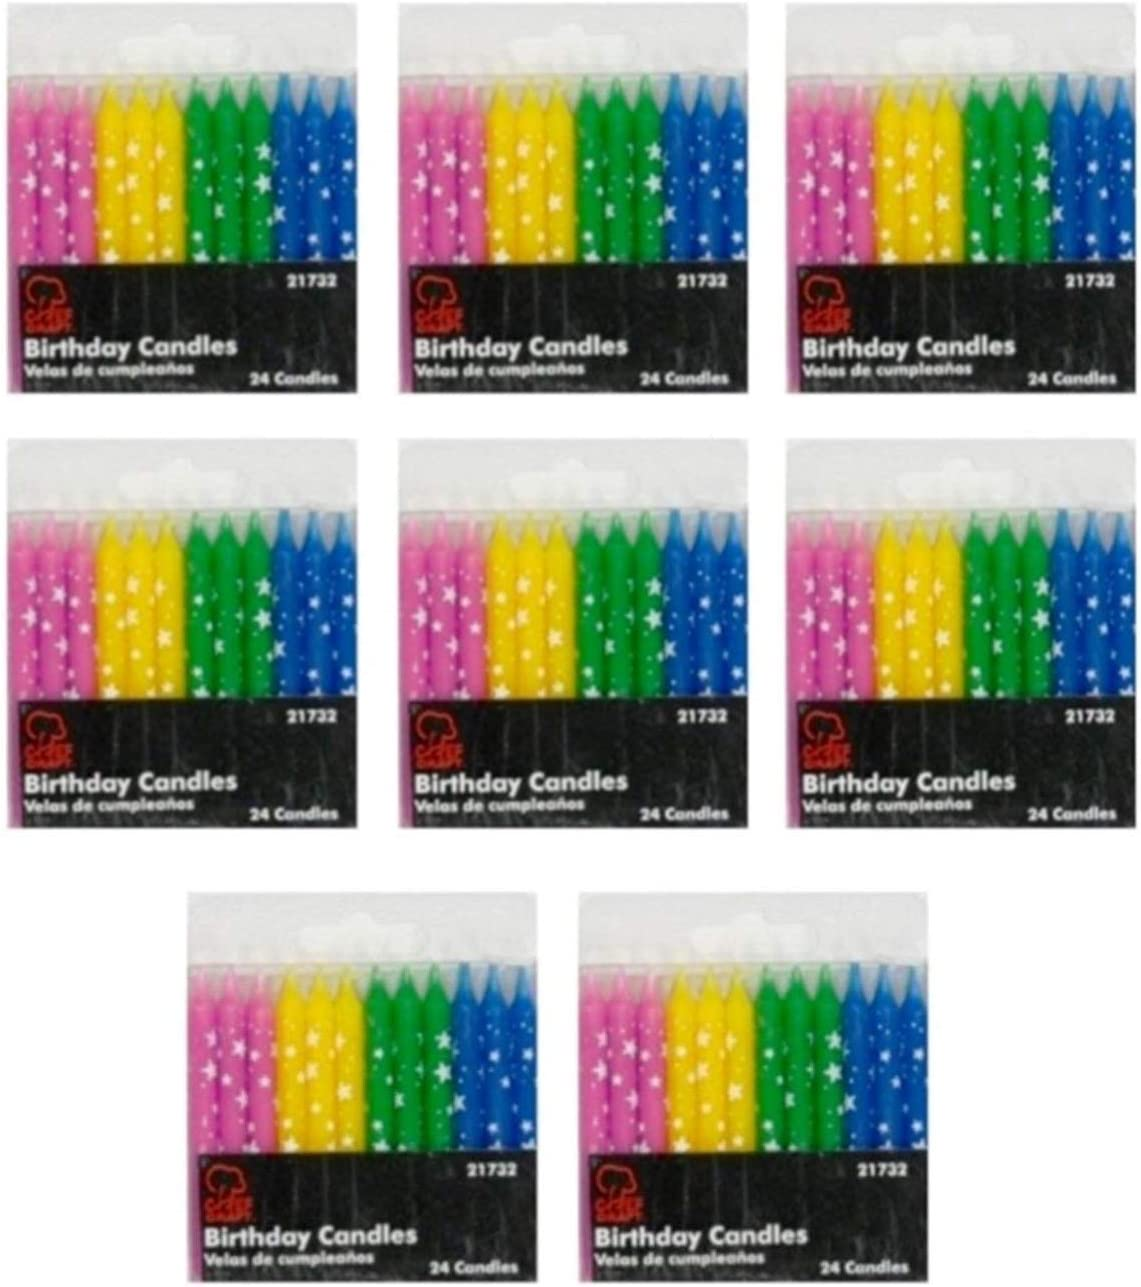 Chef Craft Birthday Candles, Polka Dot Stars, Pack of 8 - Total of 192 Candles